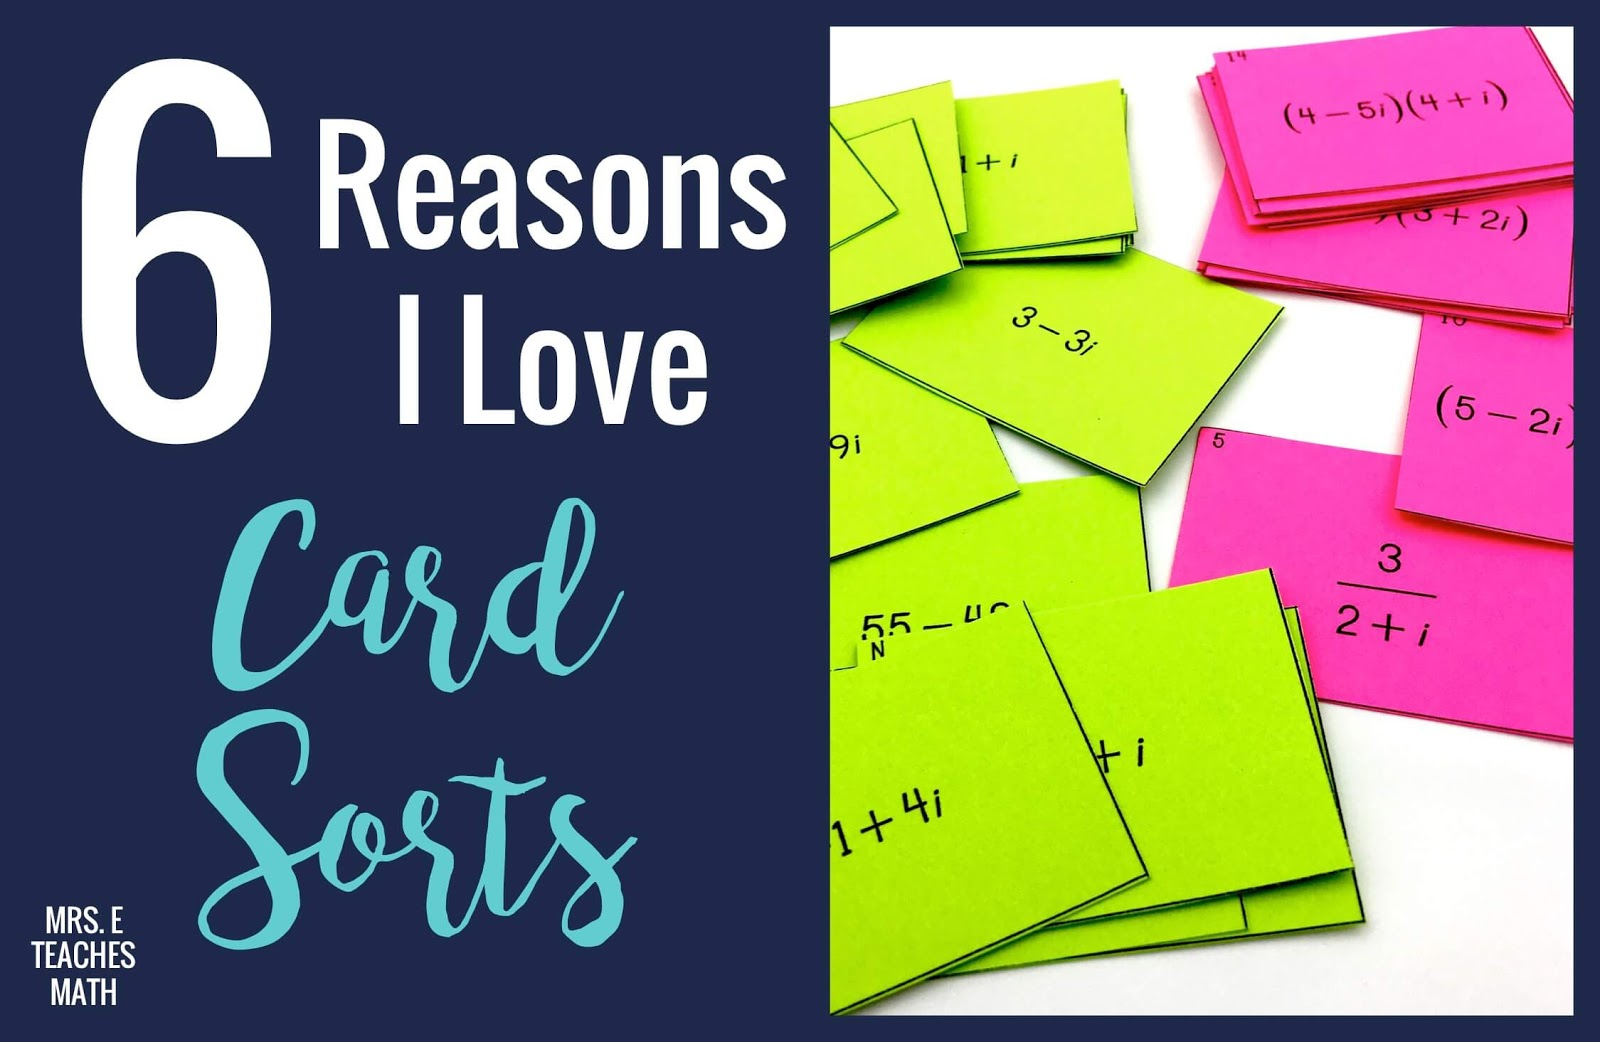 Card sorts, matching cards, interactive notebook cards, whatever you call them, I love them.  Read more about how they keep students engaged with these ideas!